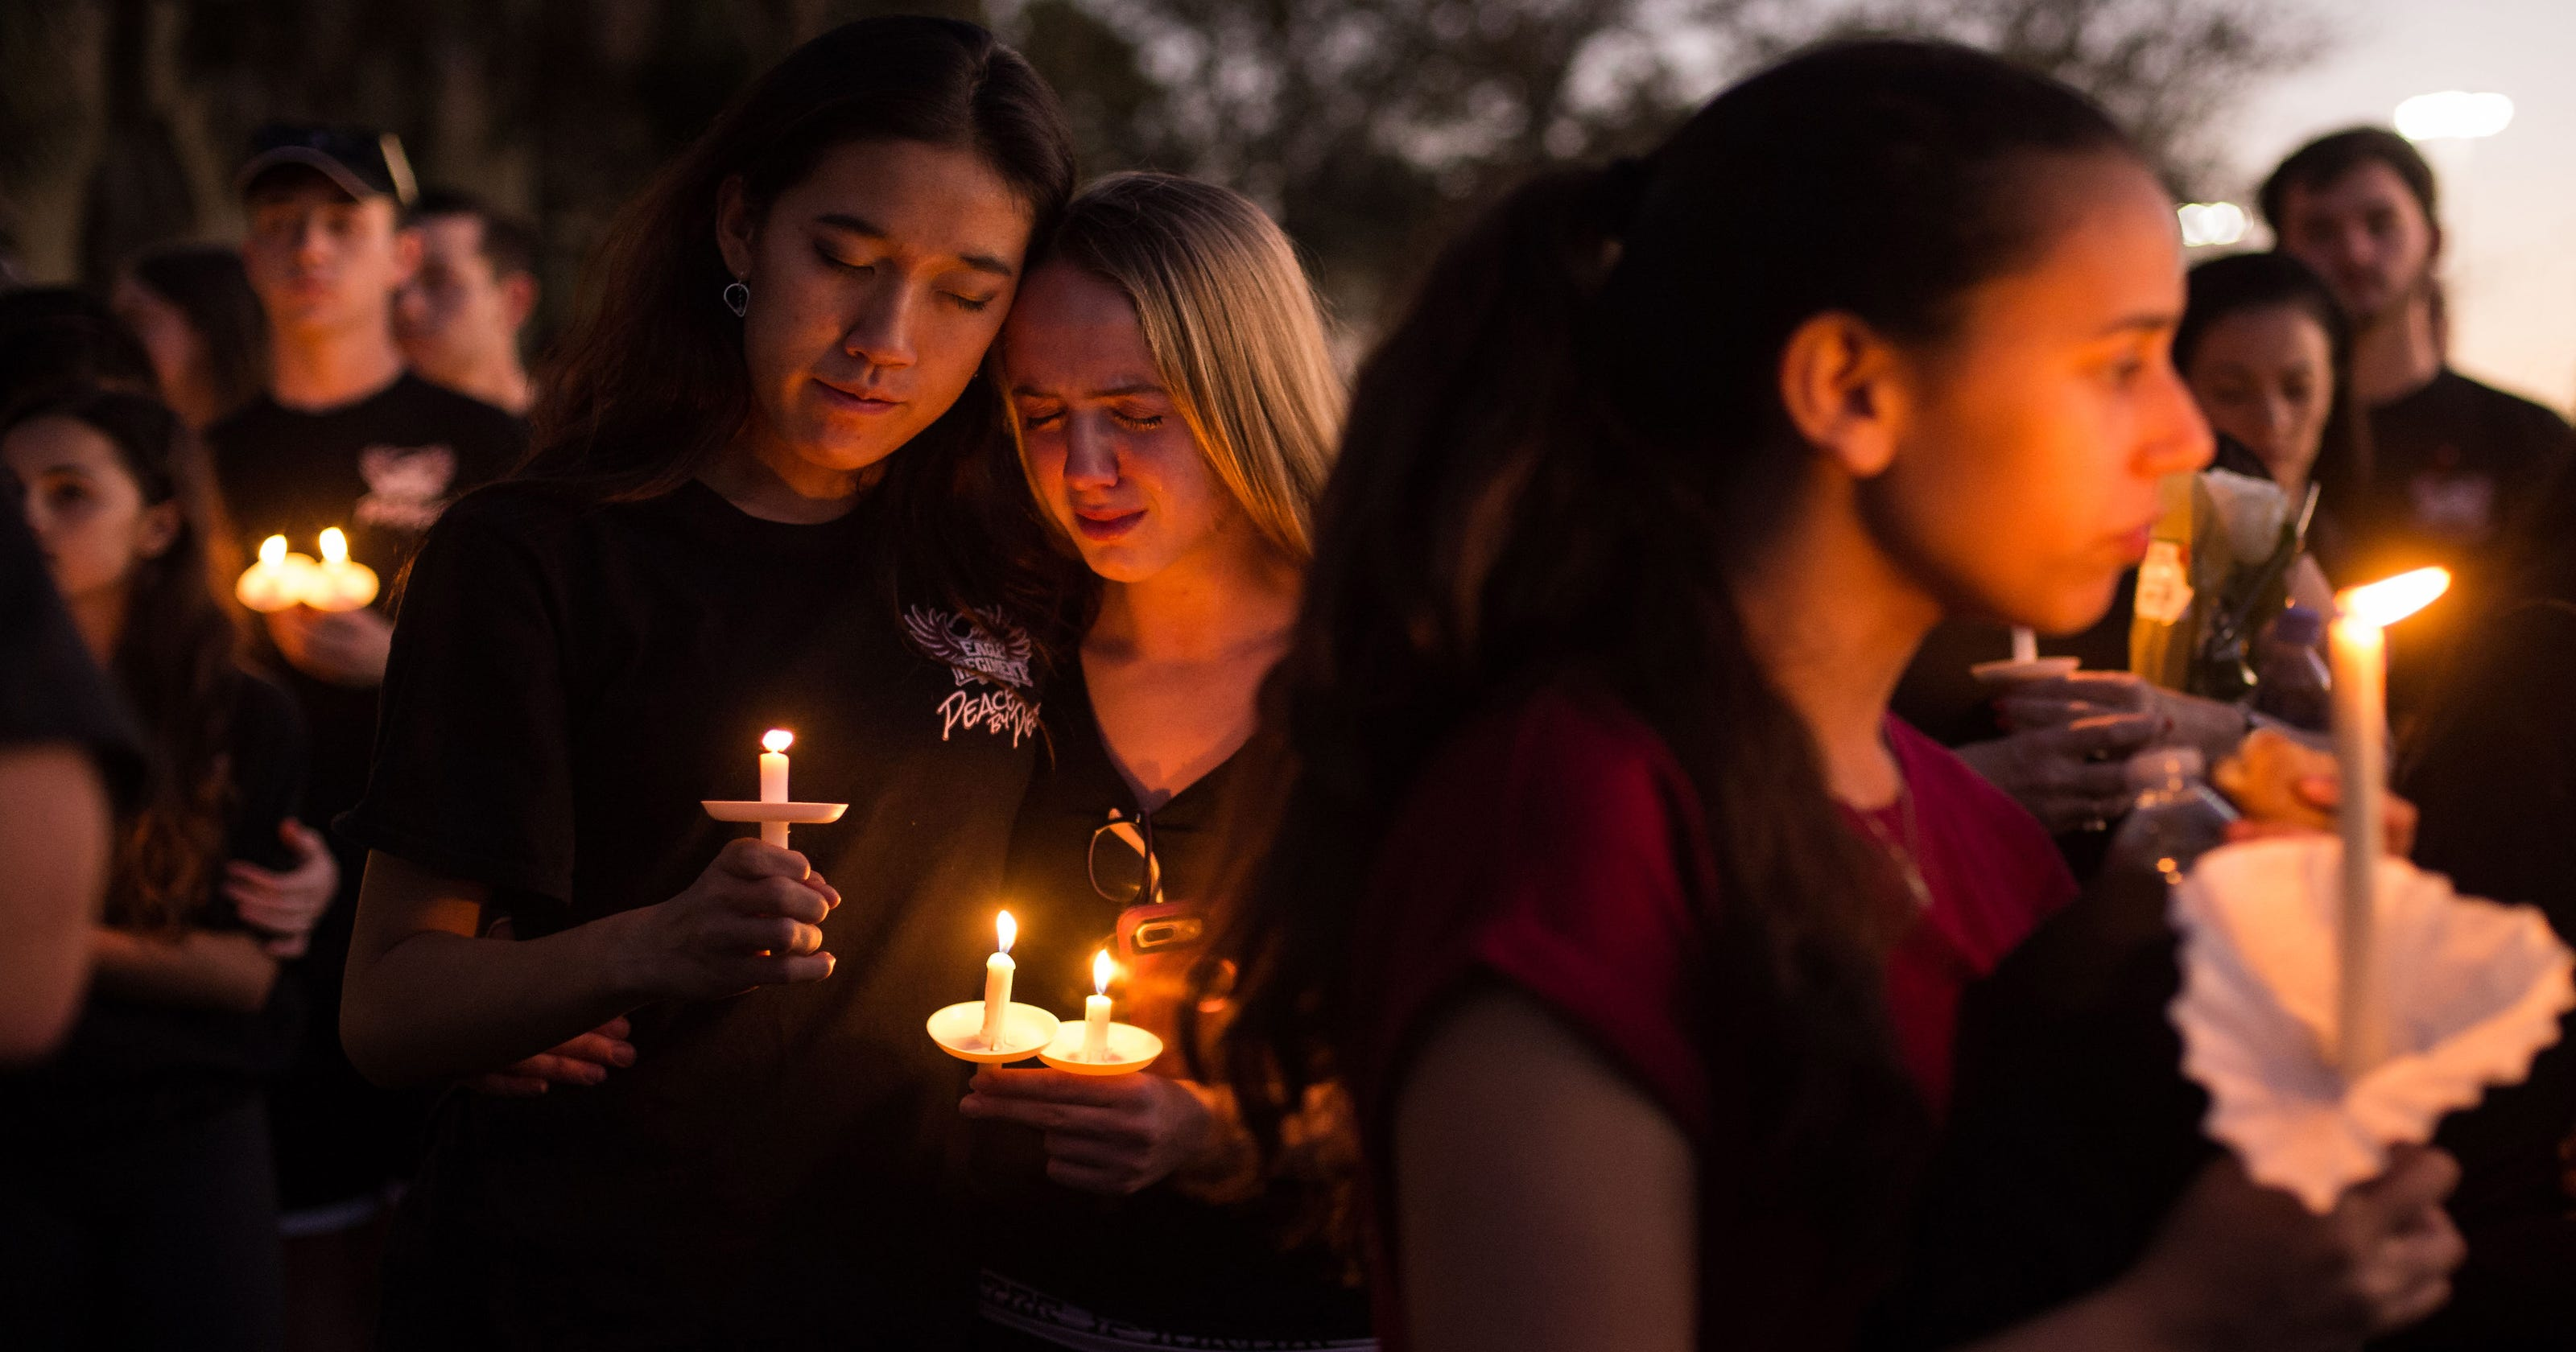 Florida school shooting: Grim task of burying victims begins